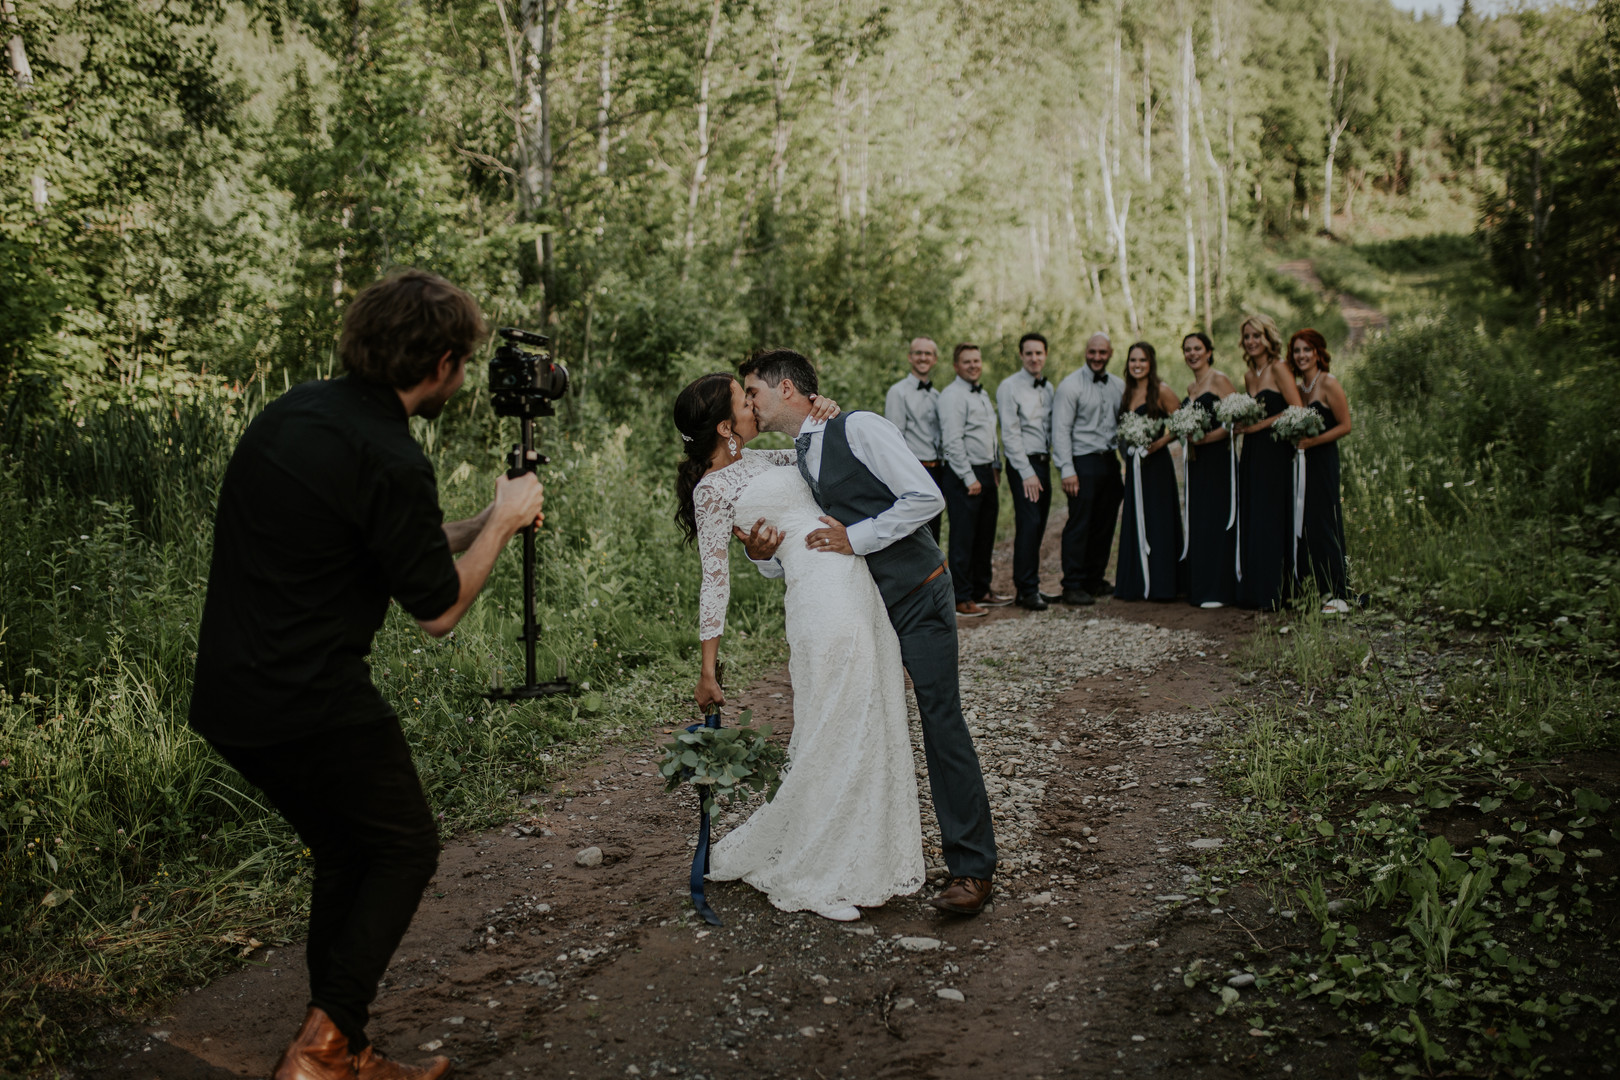 Aura wedding videographer & photographer - Ottawa Gatineau - Montreal - Laurentides - Wedding film - video de mariage - photgraphe de mariage